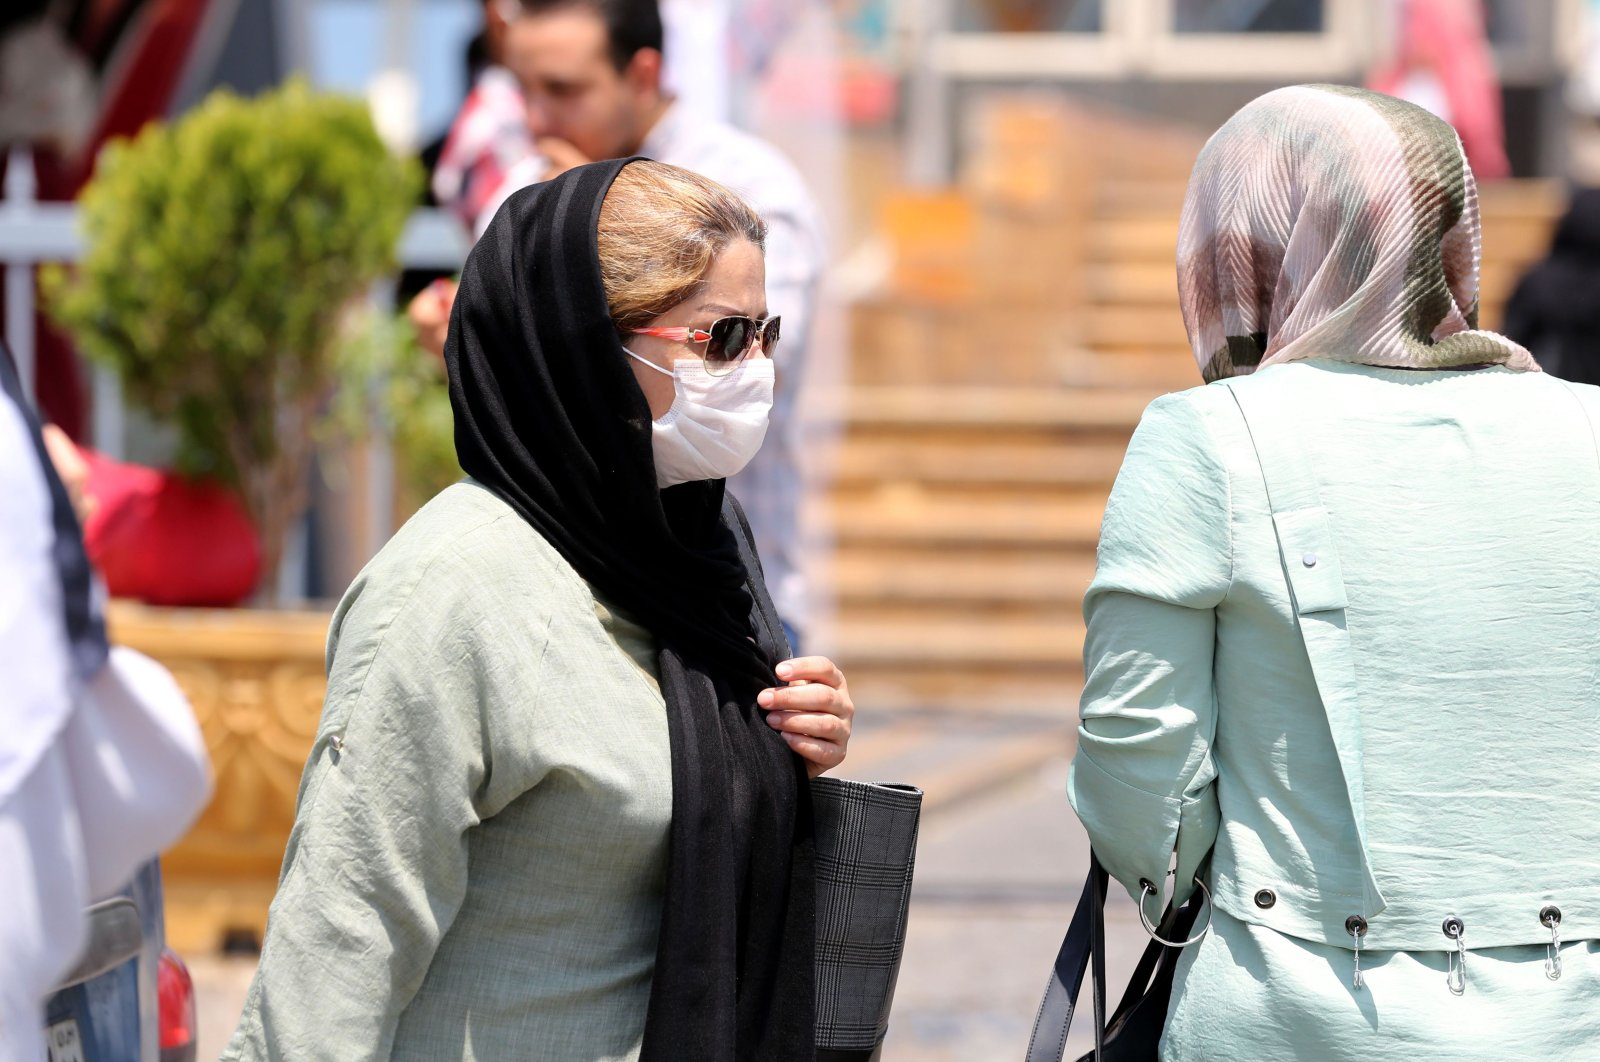 A pedestrian wearing a protective mask due to the coronavirus pandemic, walks along a street in the Iranian capital Tehran, June 28, 2020. (AFP Photo)